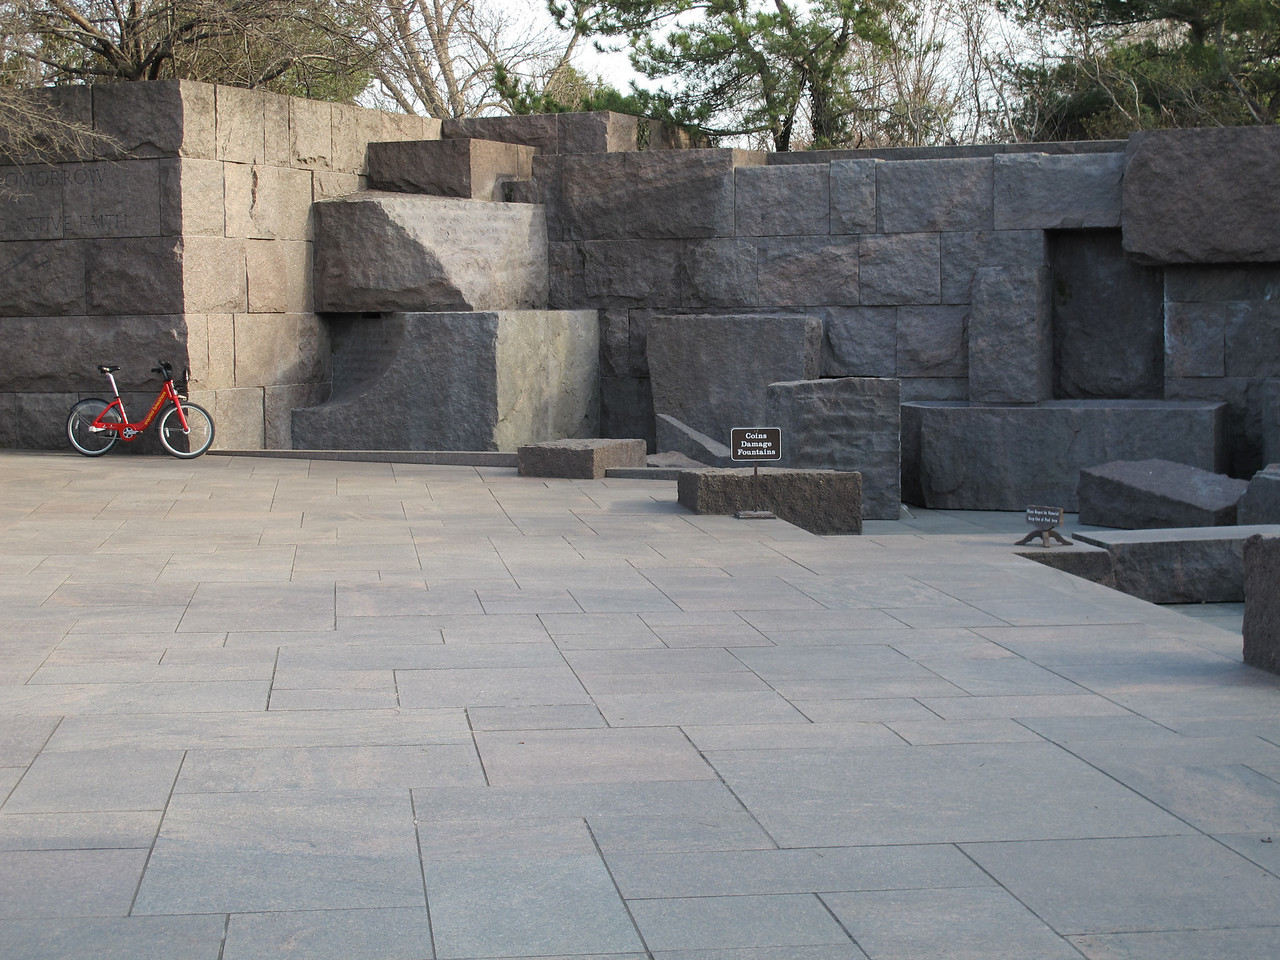 Teddy Roosevelt memorial.